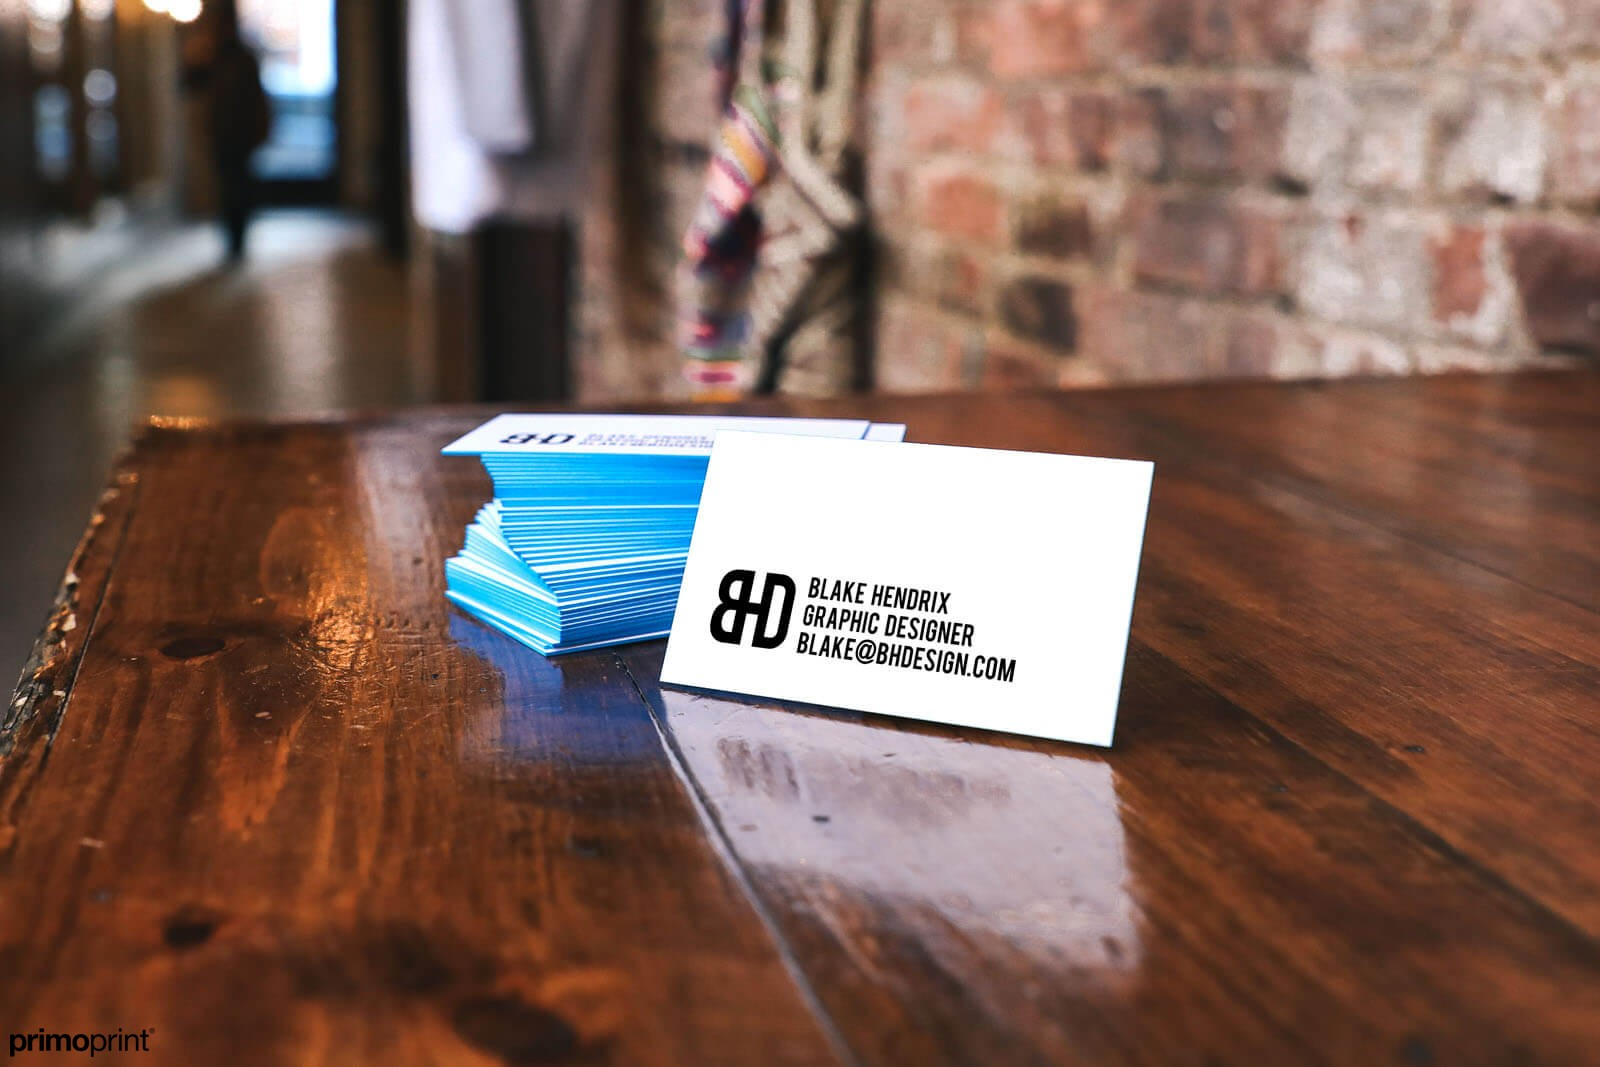 Blue painted edge business card printed on 32PT thick uncoated card stock.